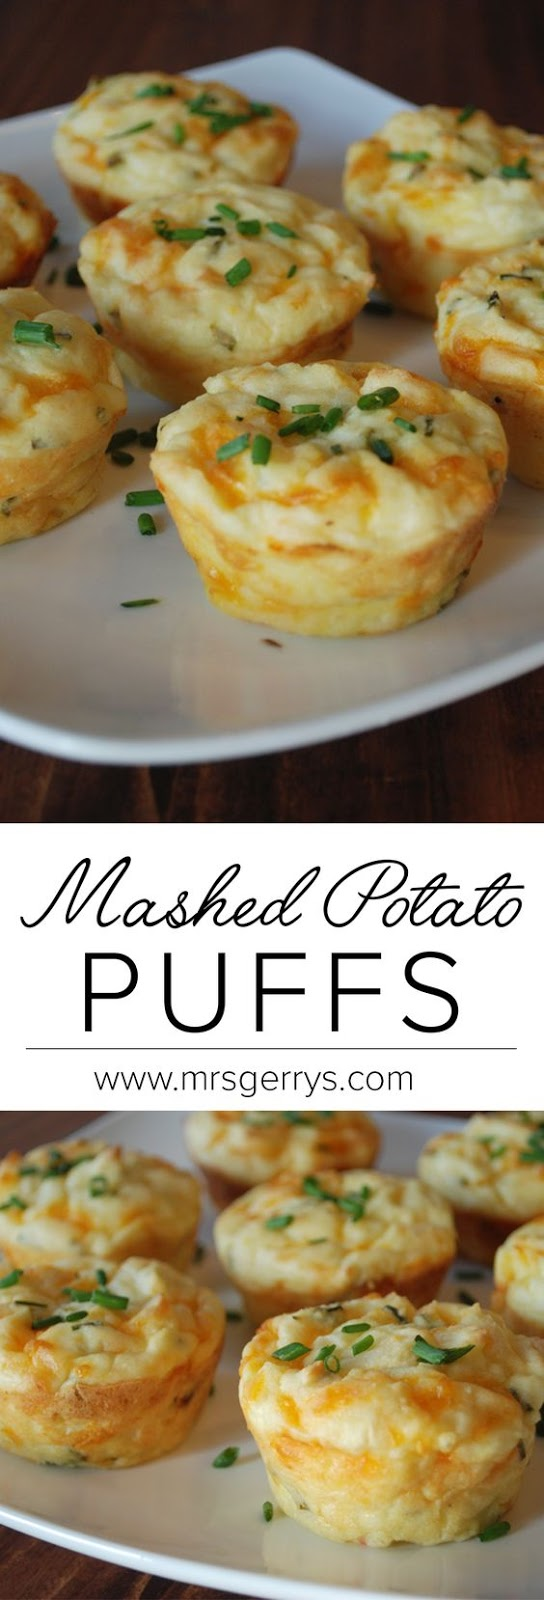 Delicious mashed potato puffs that are crispy on the outside and soft, creamy and cheesy on the inside.